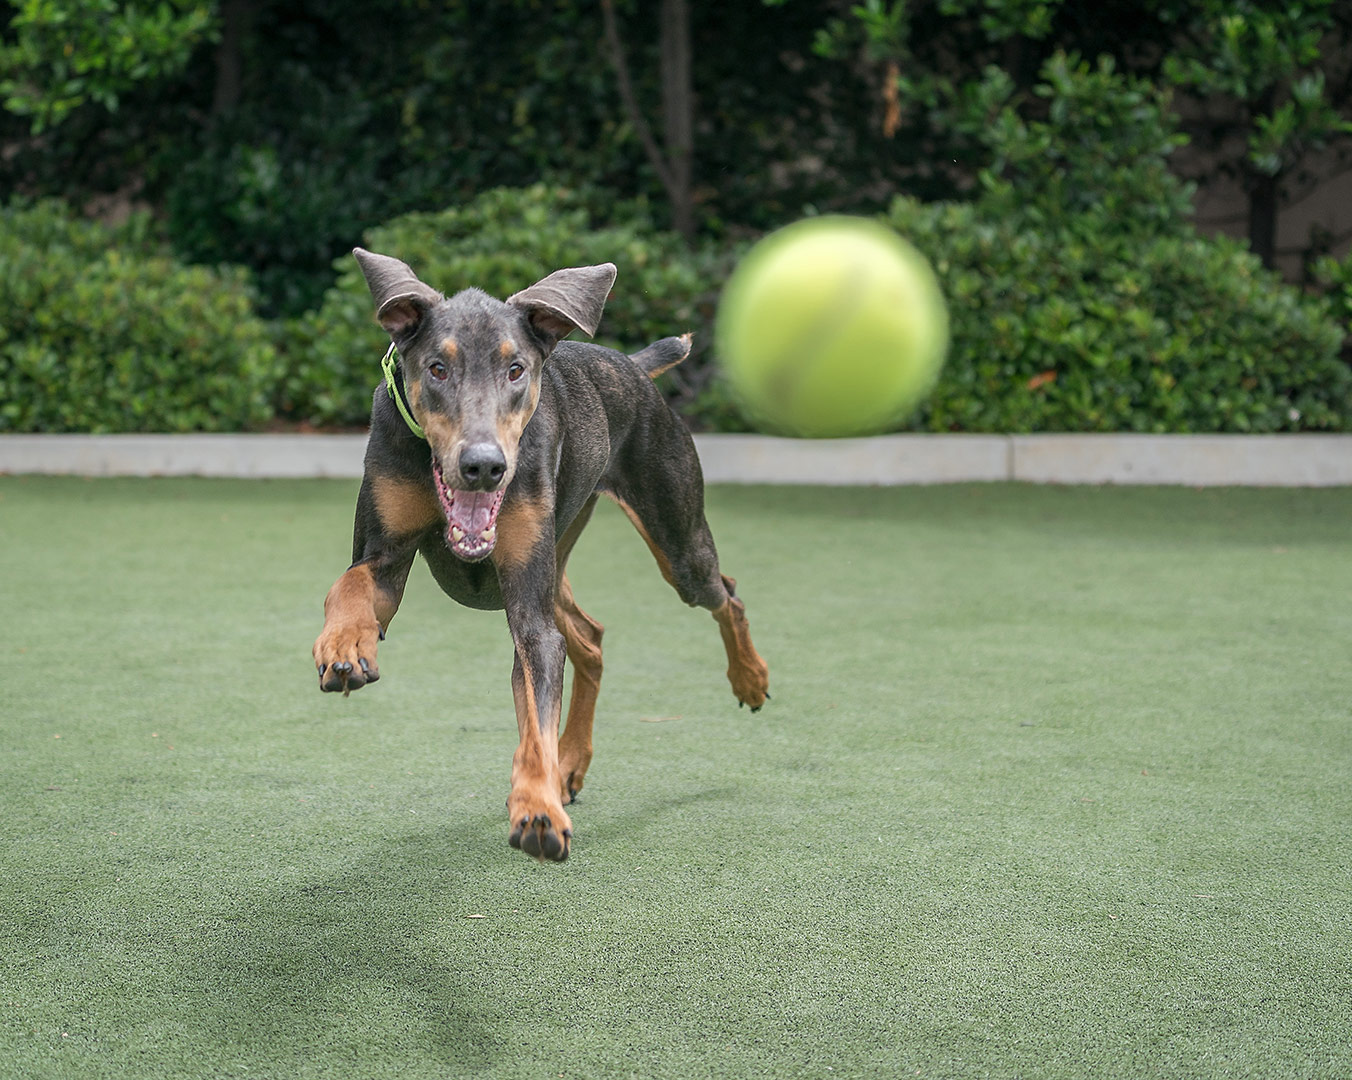 beautiful black and tan dog in motion with mouth open chasing a yellow tennis ball